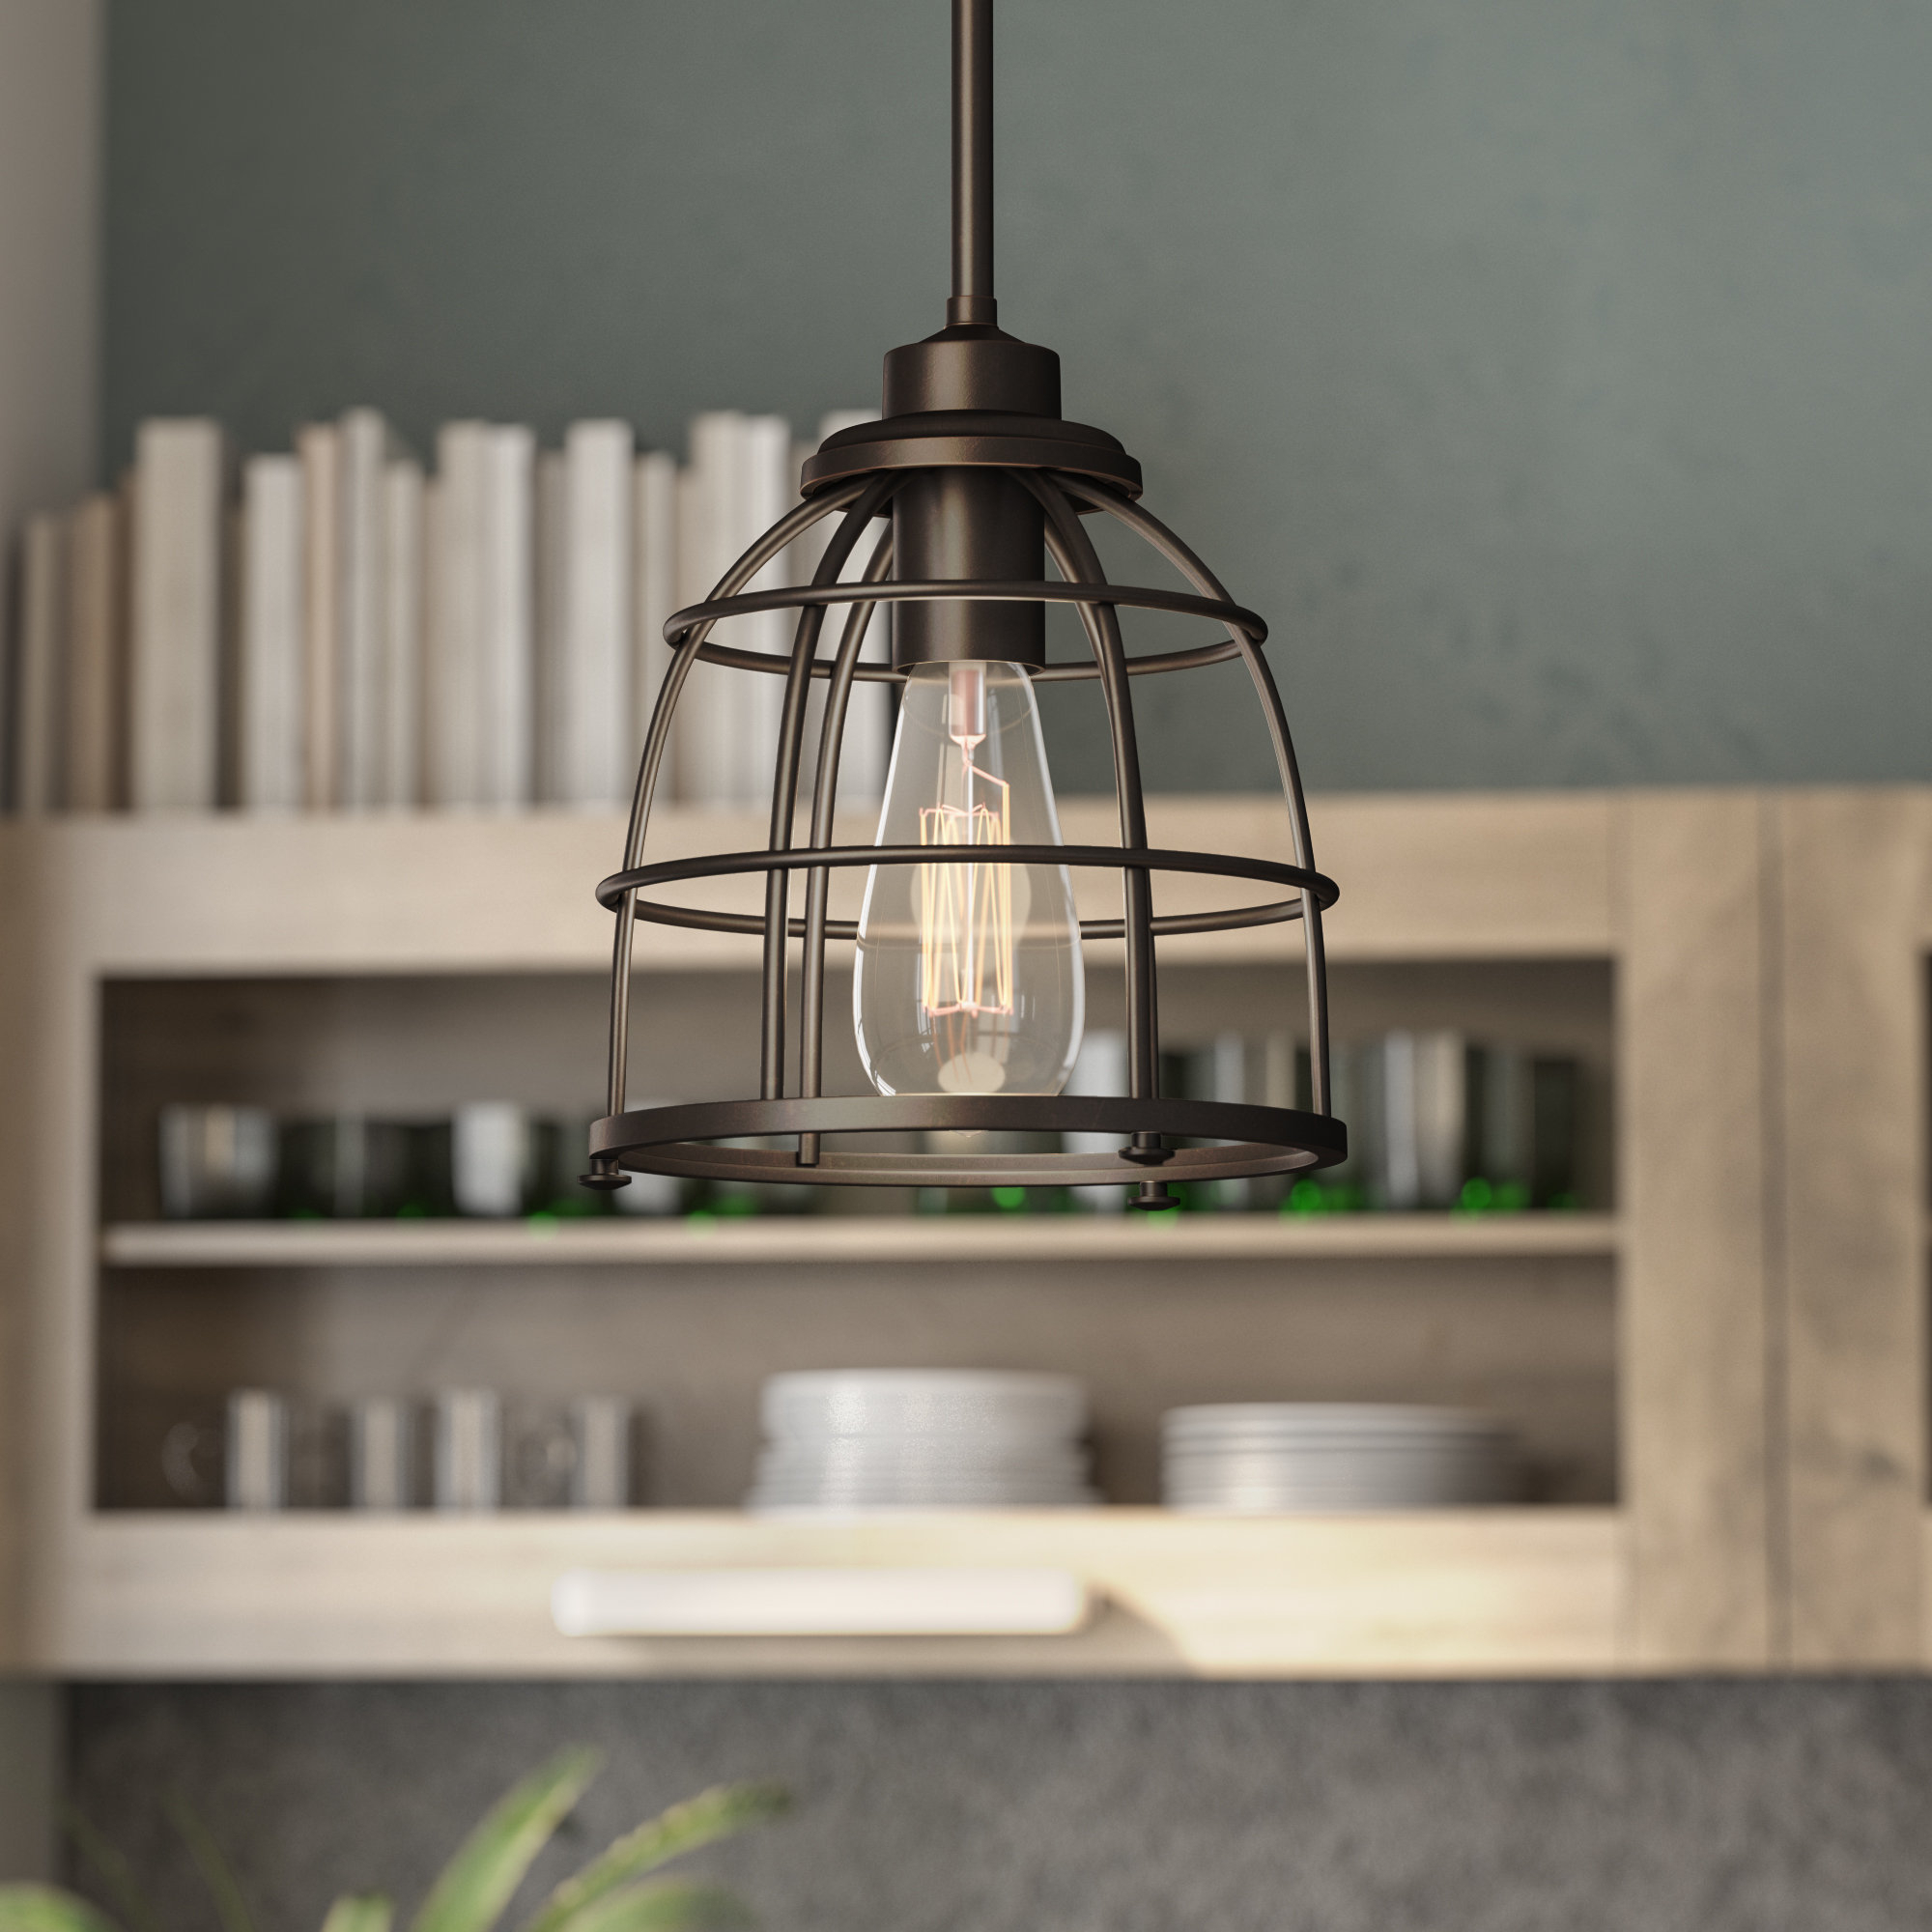 Harney 1 Light Single Bell Pendant Throughout Widely Used 1 Light Single Bell Pendants (View 15 of 20)